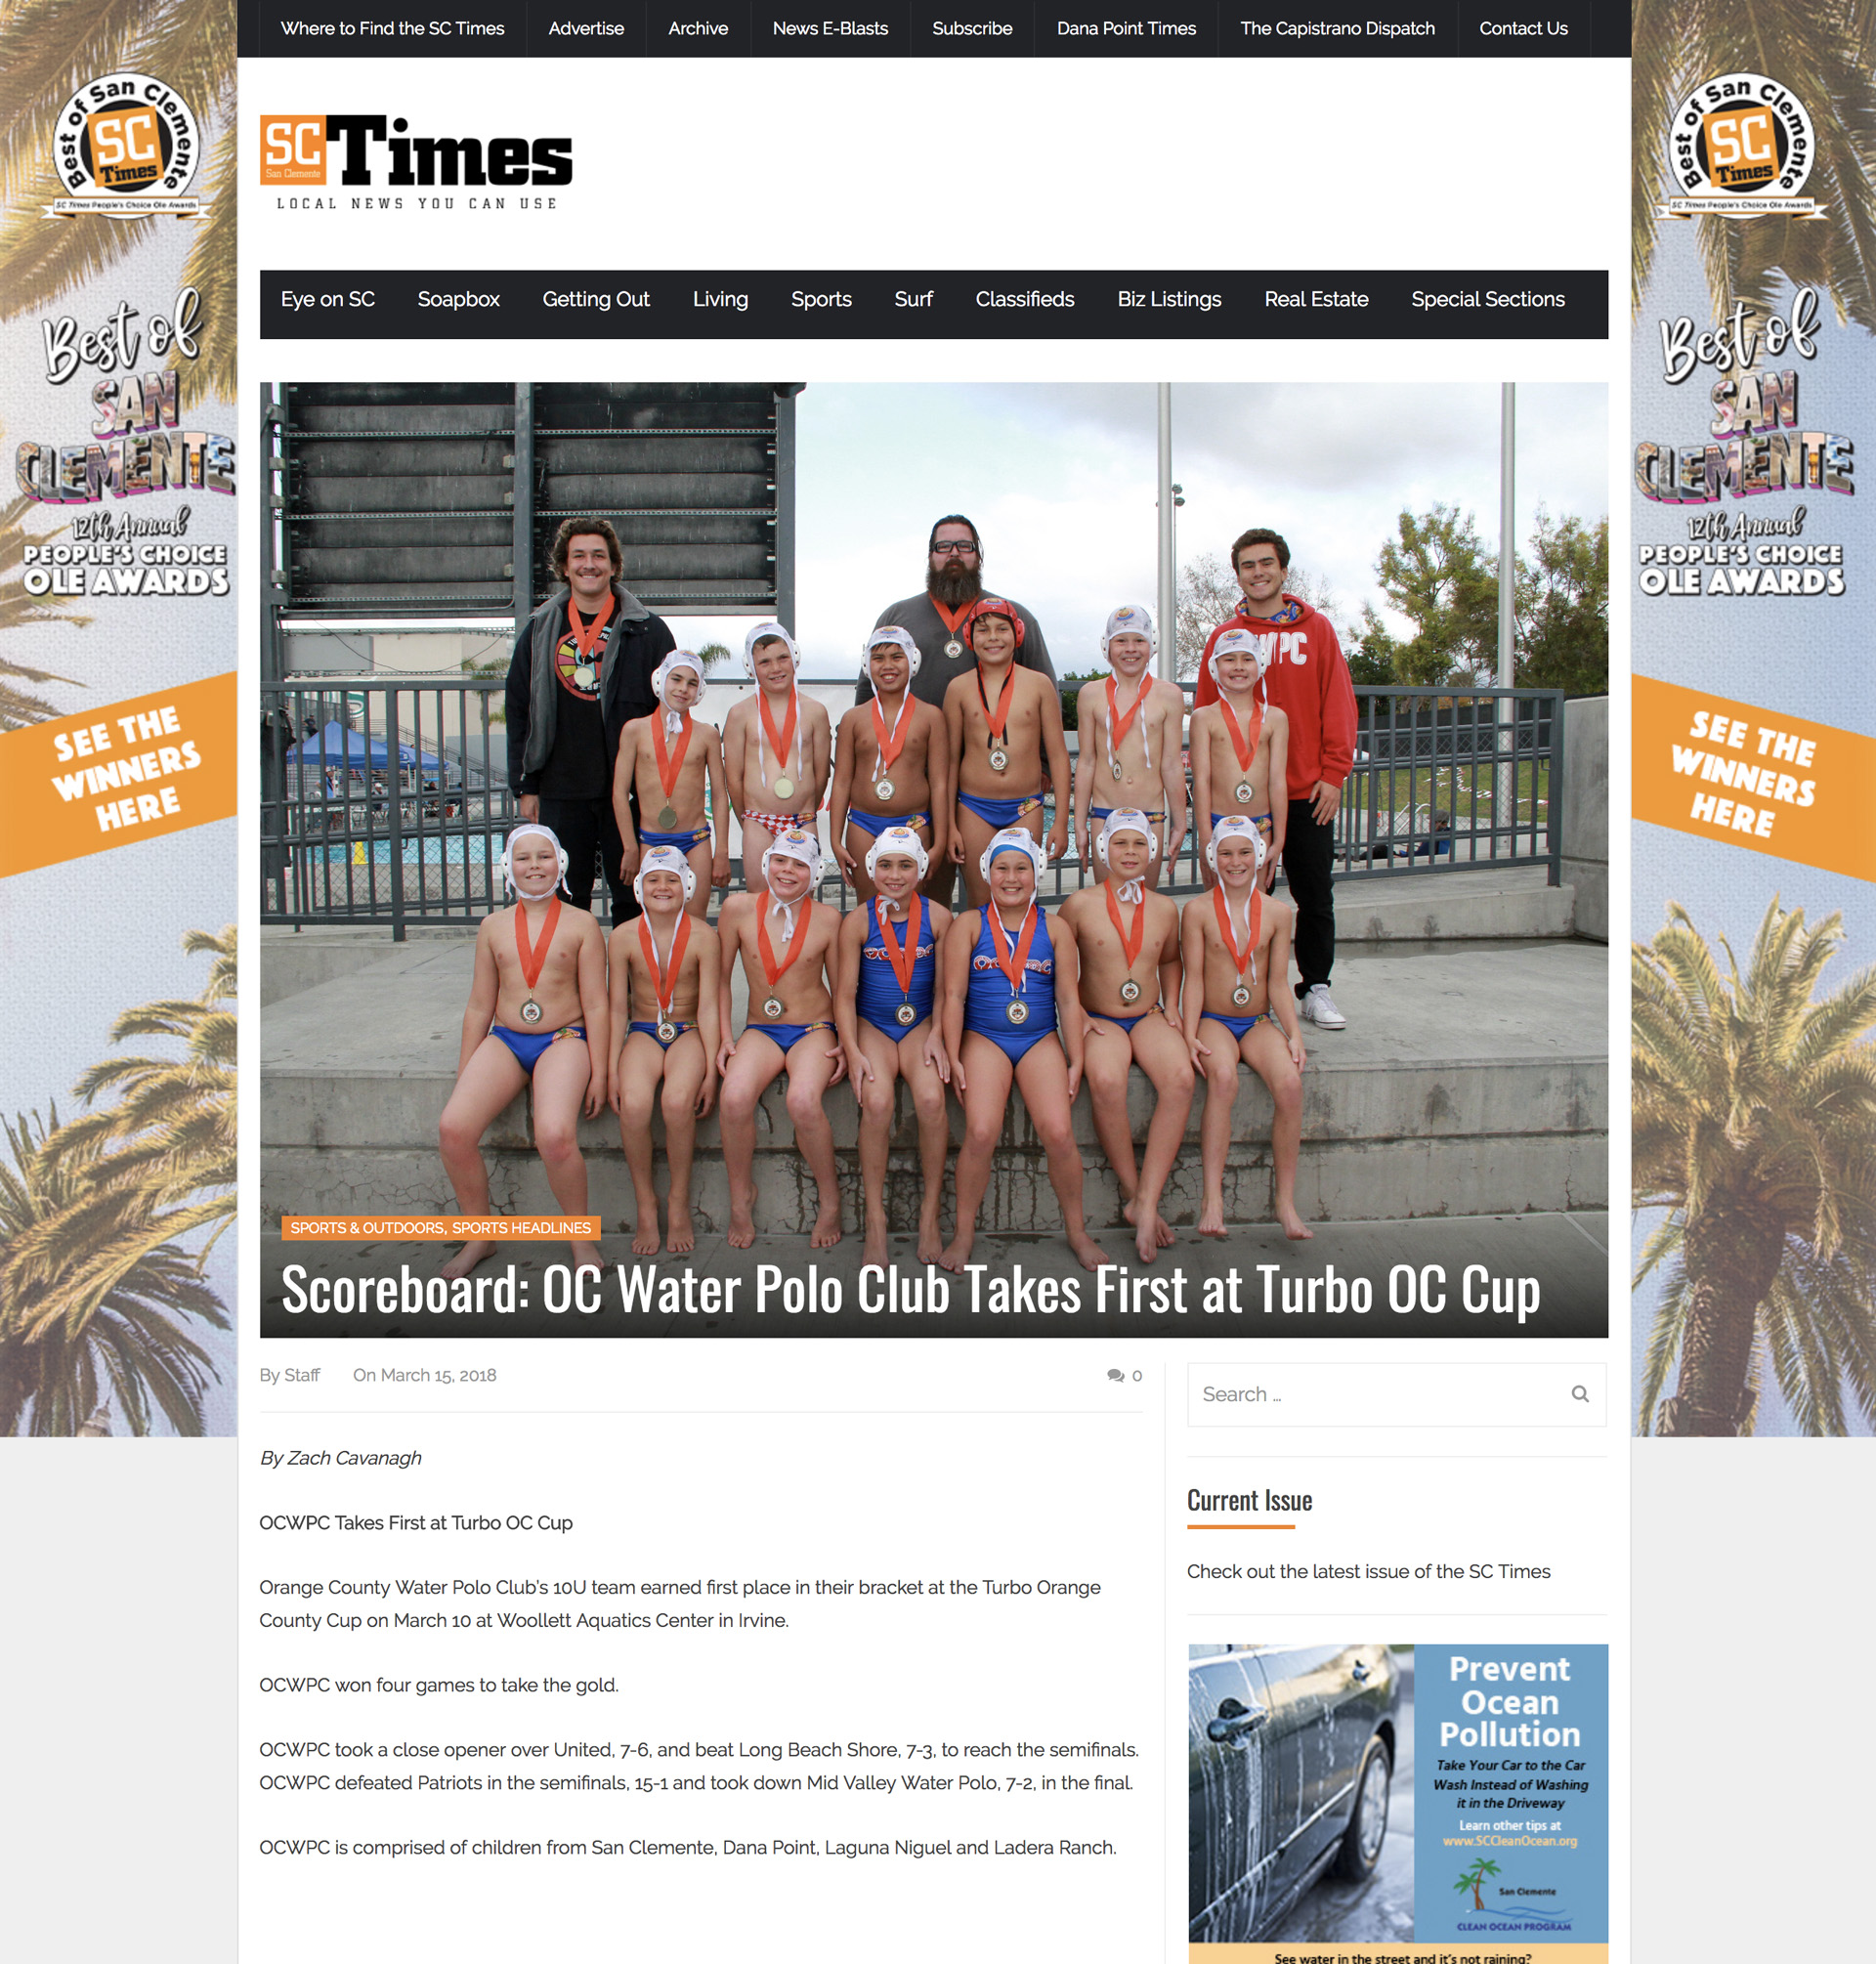 SC-Times-2018-03-15-OCWPC-Takes-First-at-2018-Turbo-OC-Cup